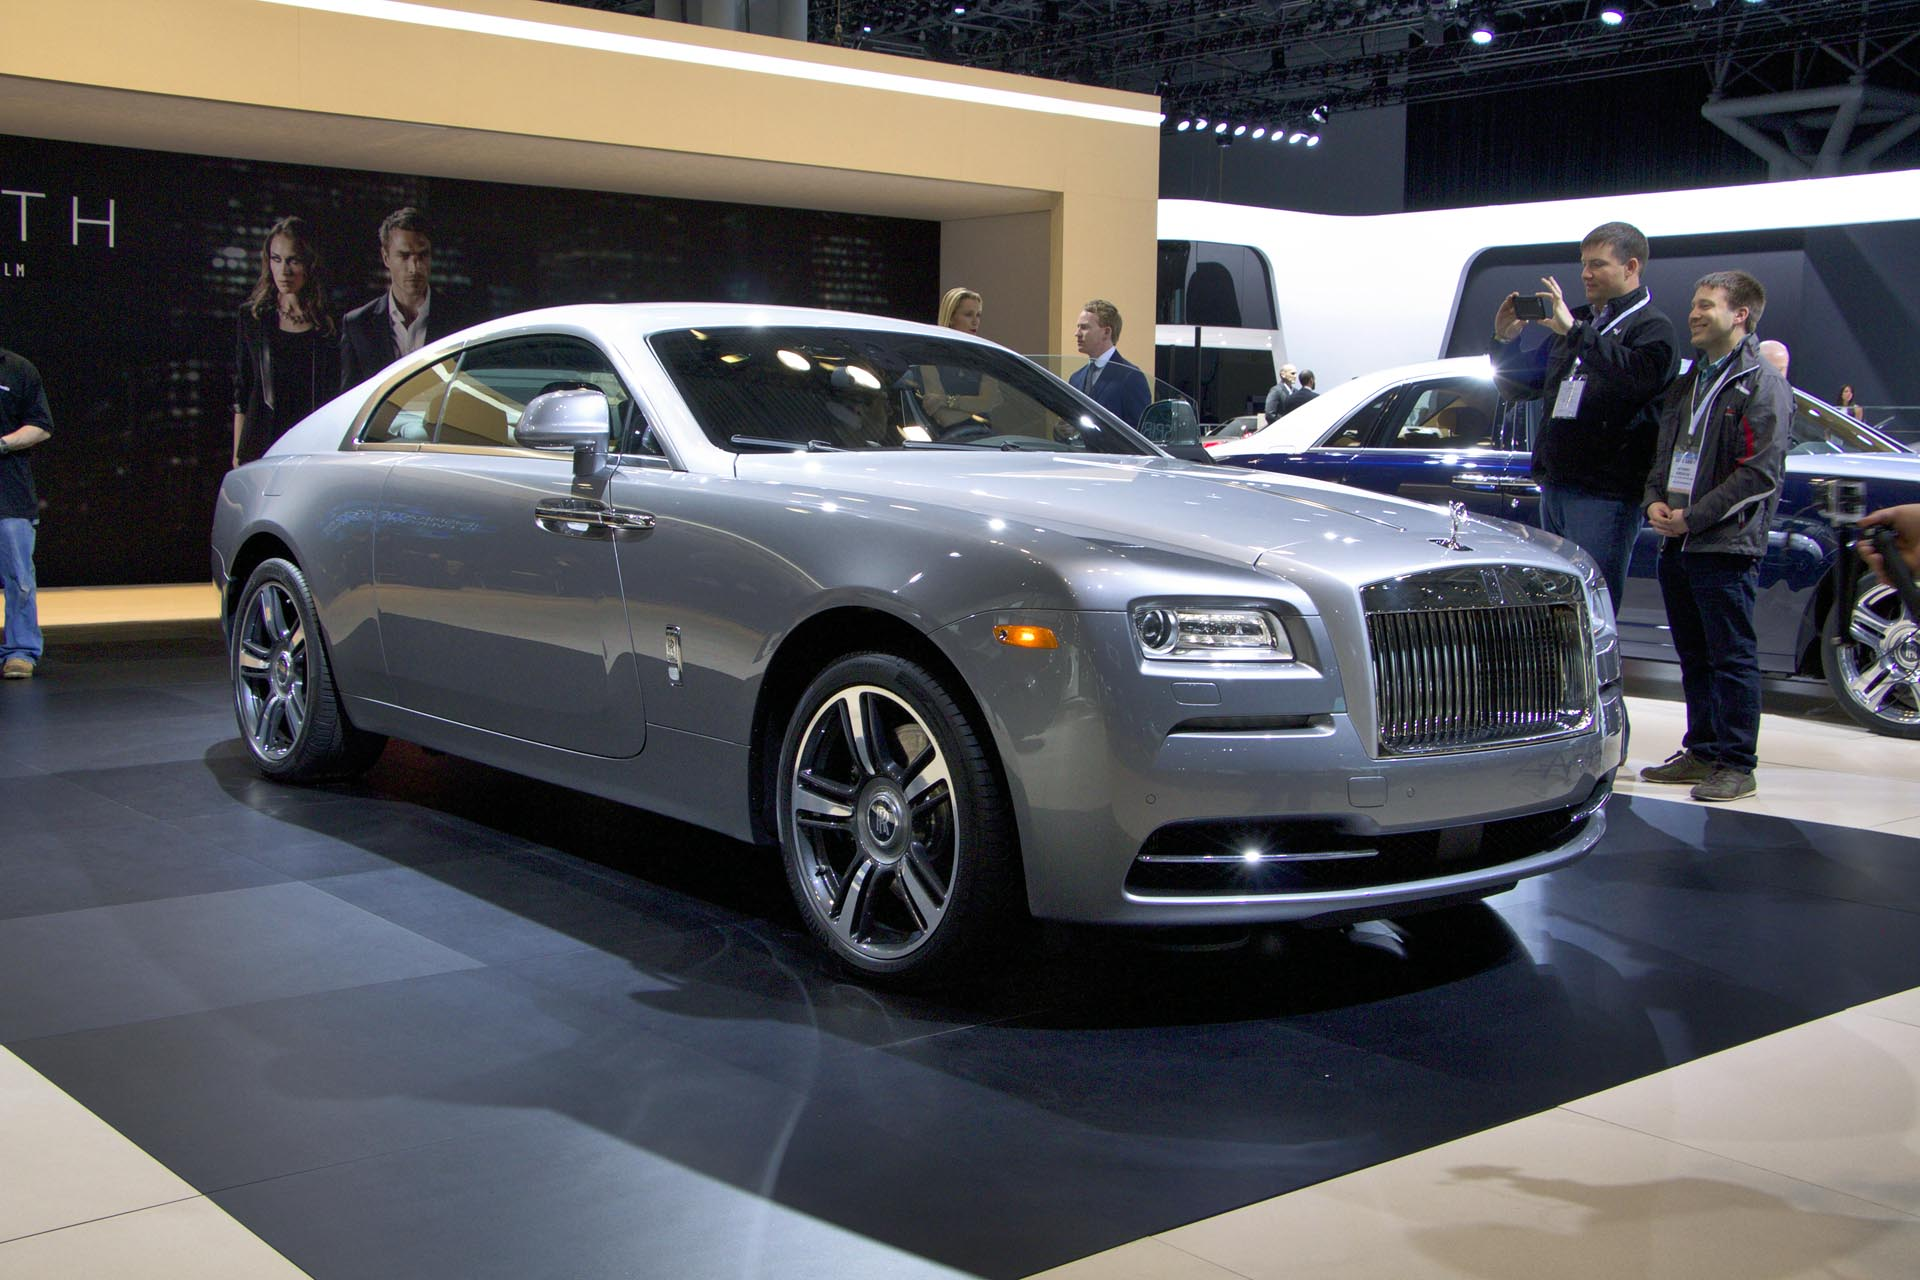 2016 rolls royce wraith inspired by film. Black Bedroom Furniture Sets. Home Design Ideas